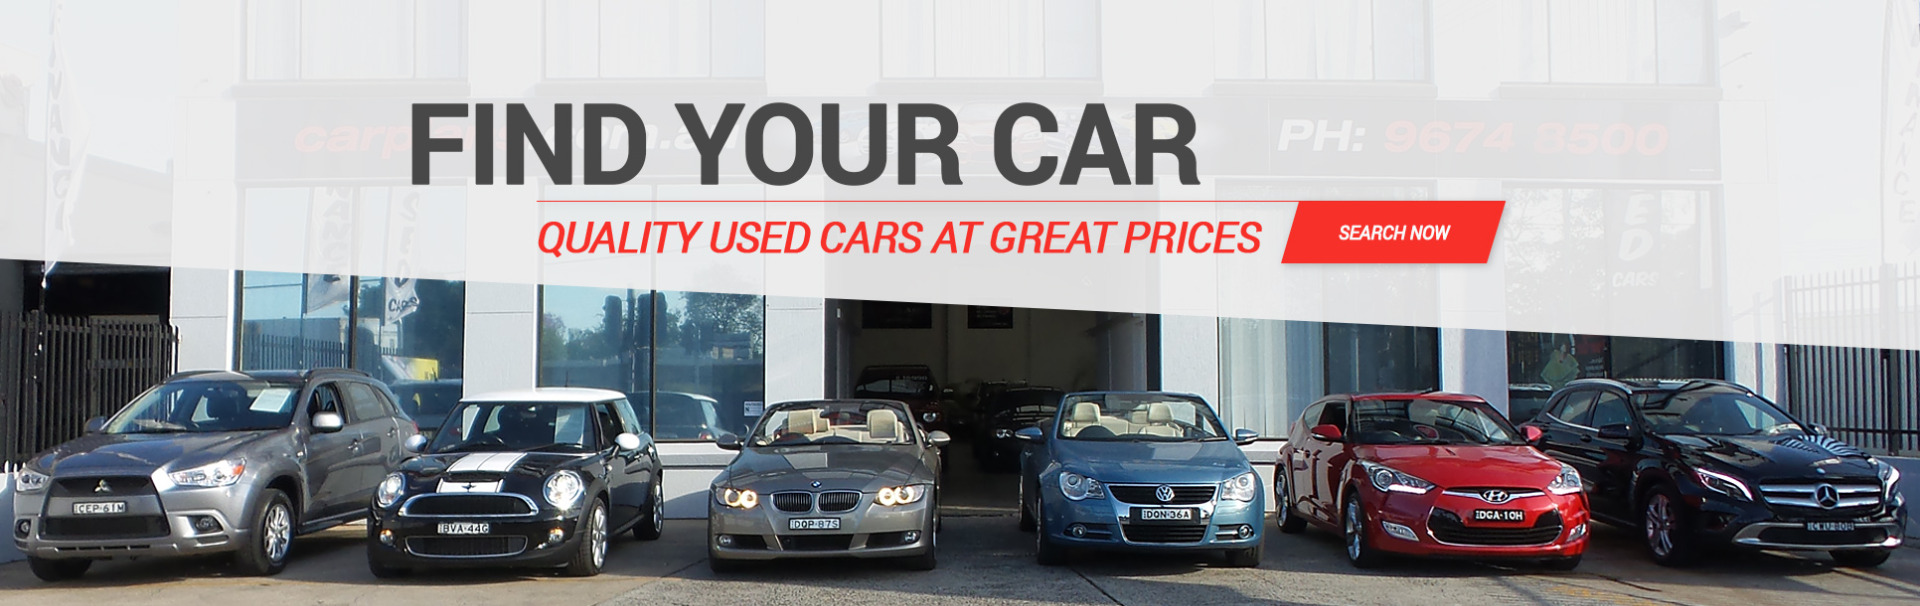 Car Plans Australia - We Buy, We Sell, We Consign | Used Car Dealer ...